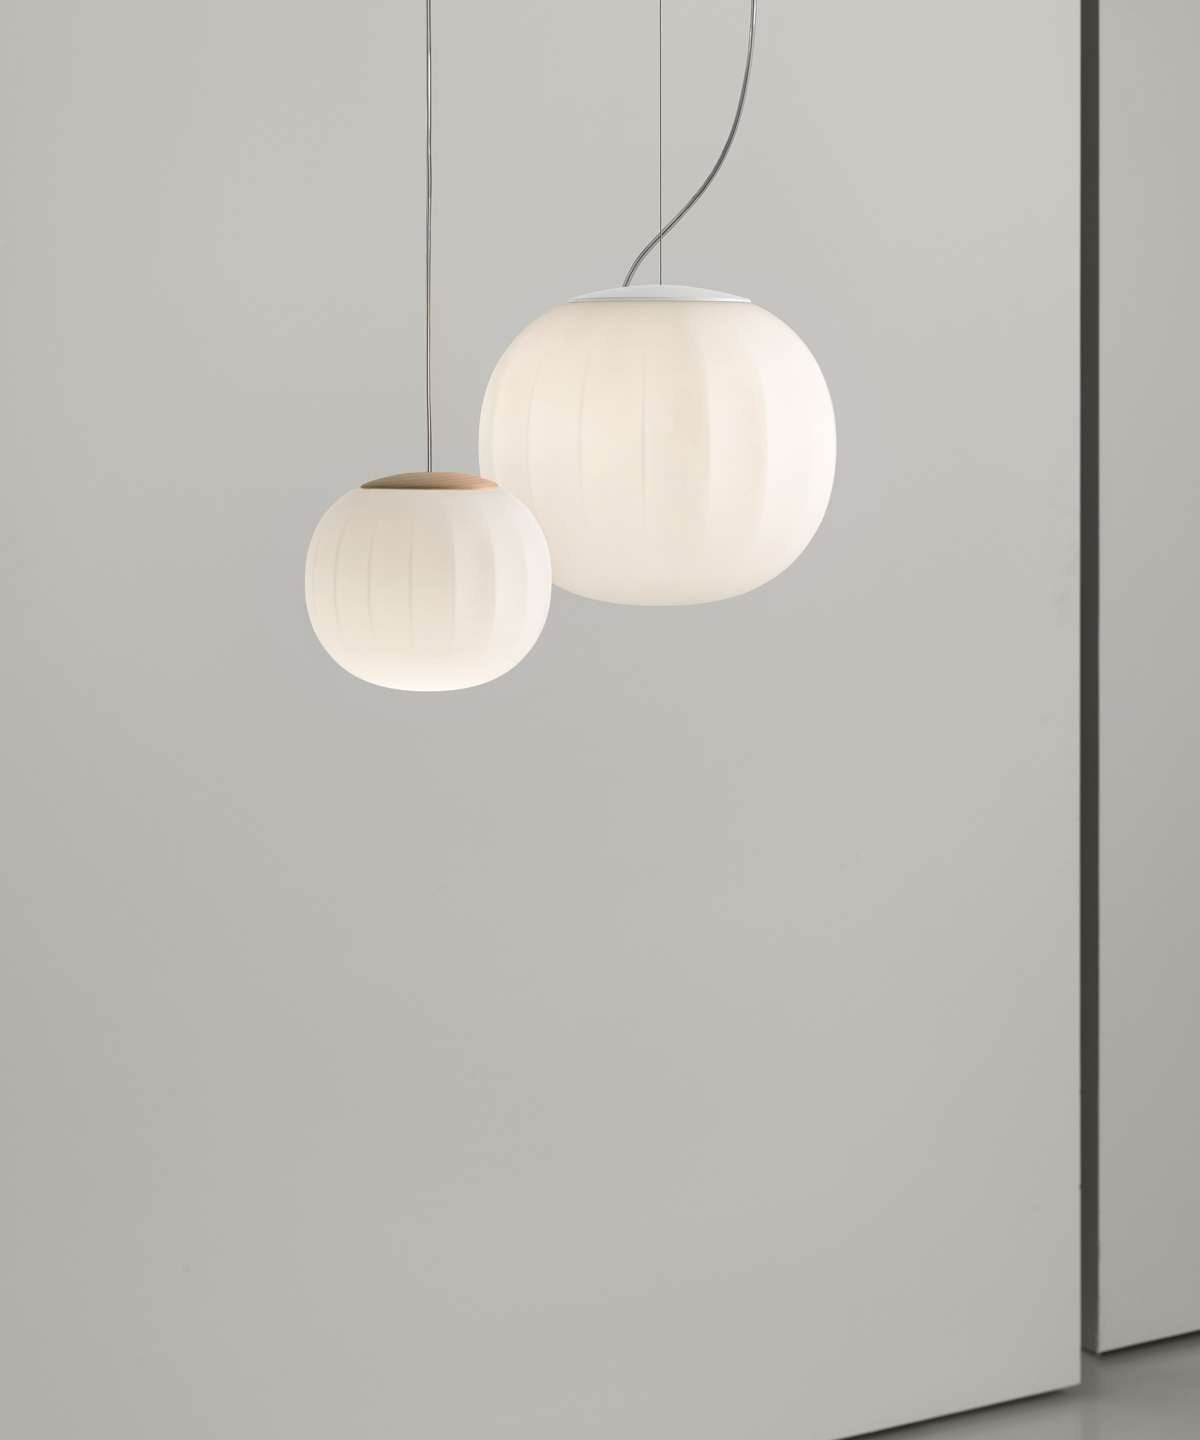 Luceplan D92 Lita Suspension Lamp